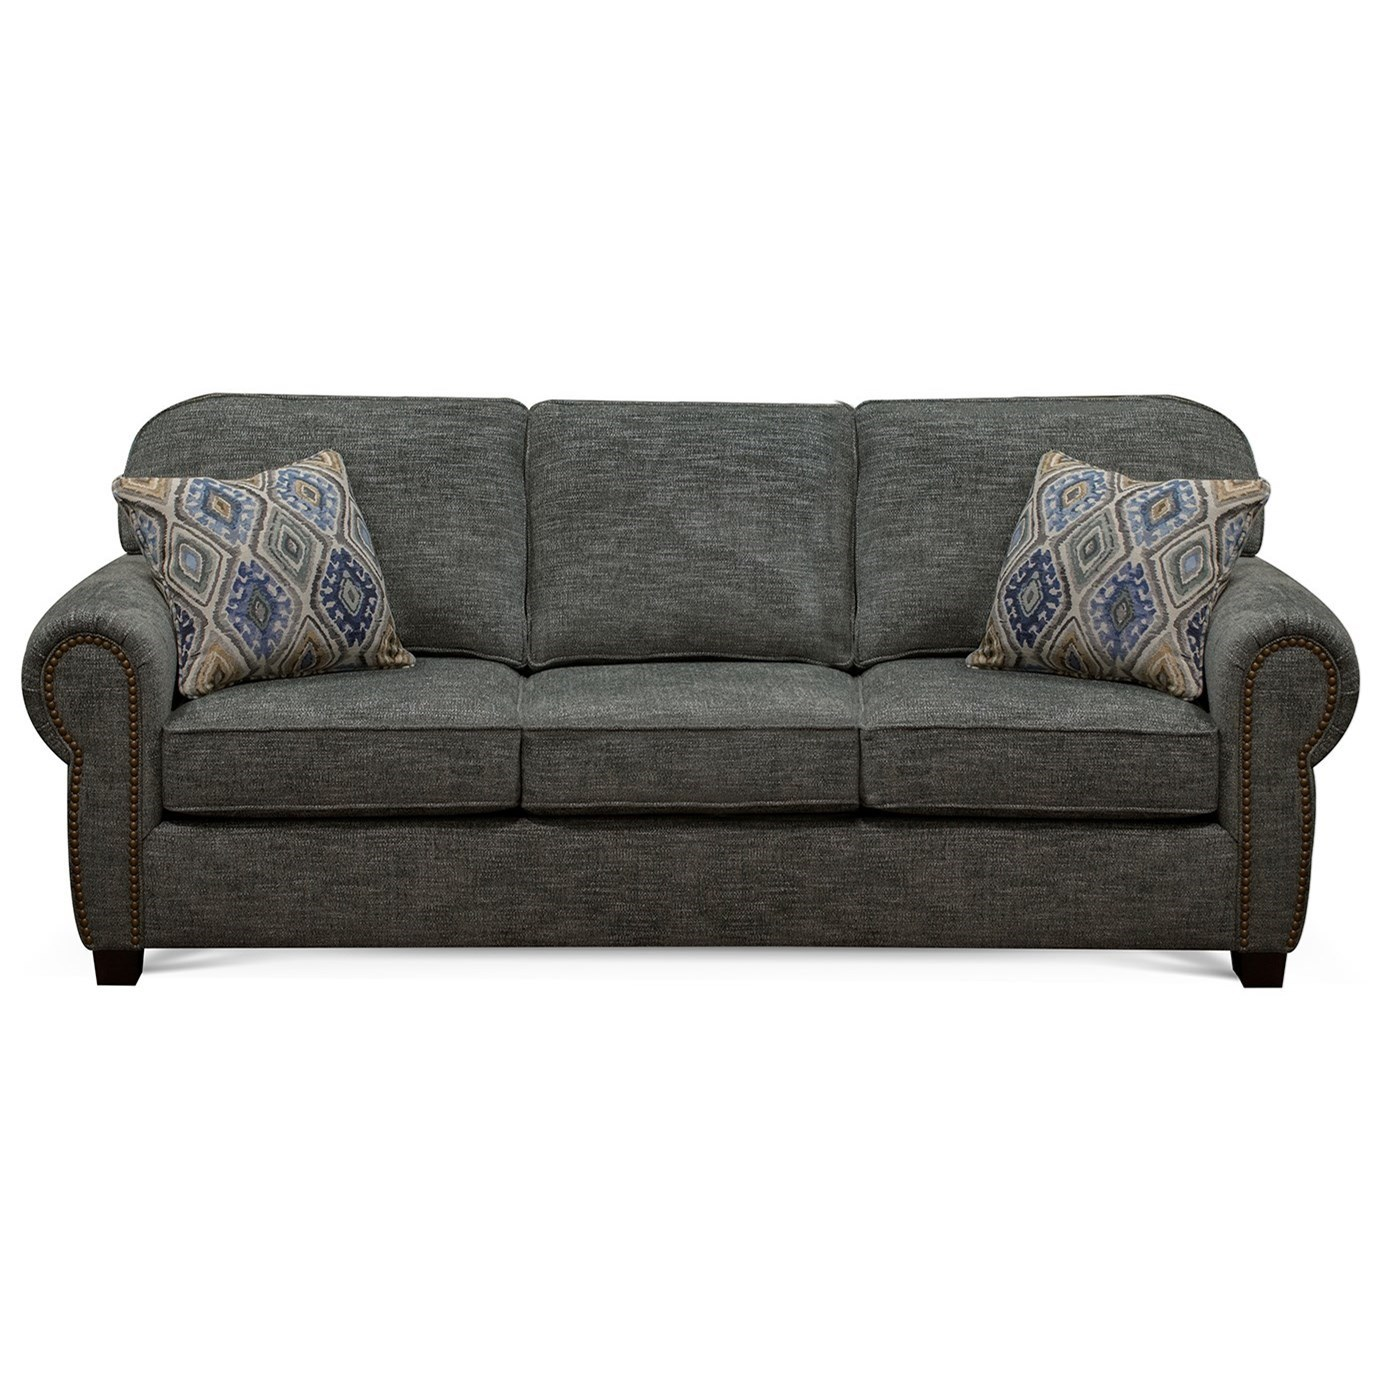 England Neil 8a05n Traditional Sofa With Rolled Arms And